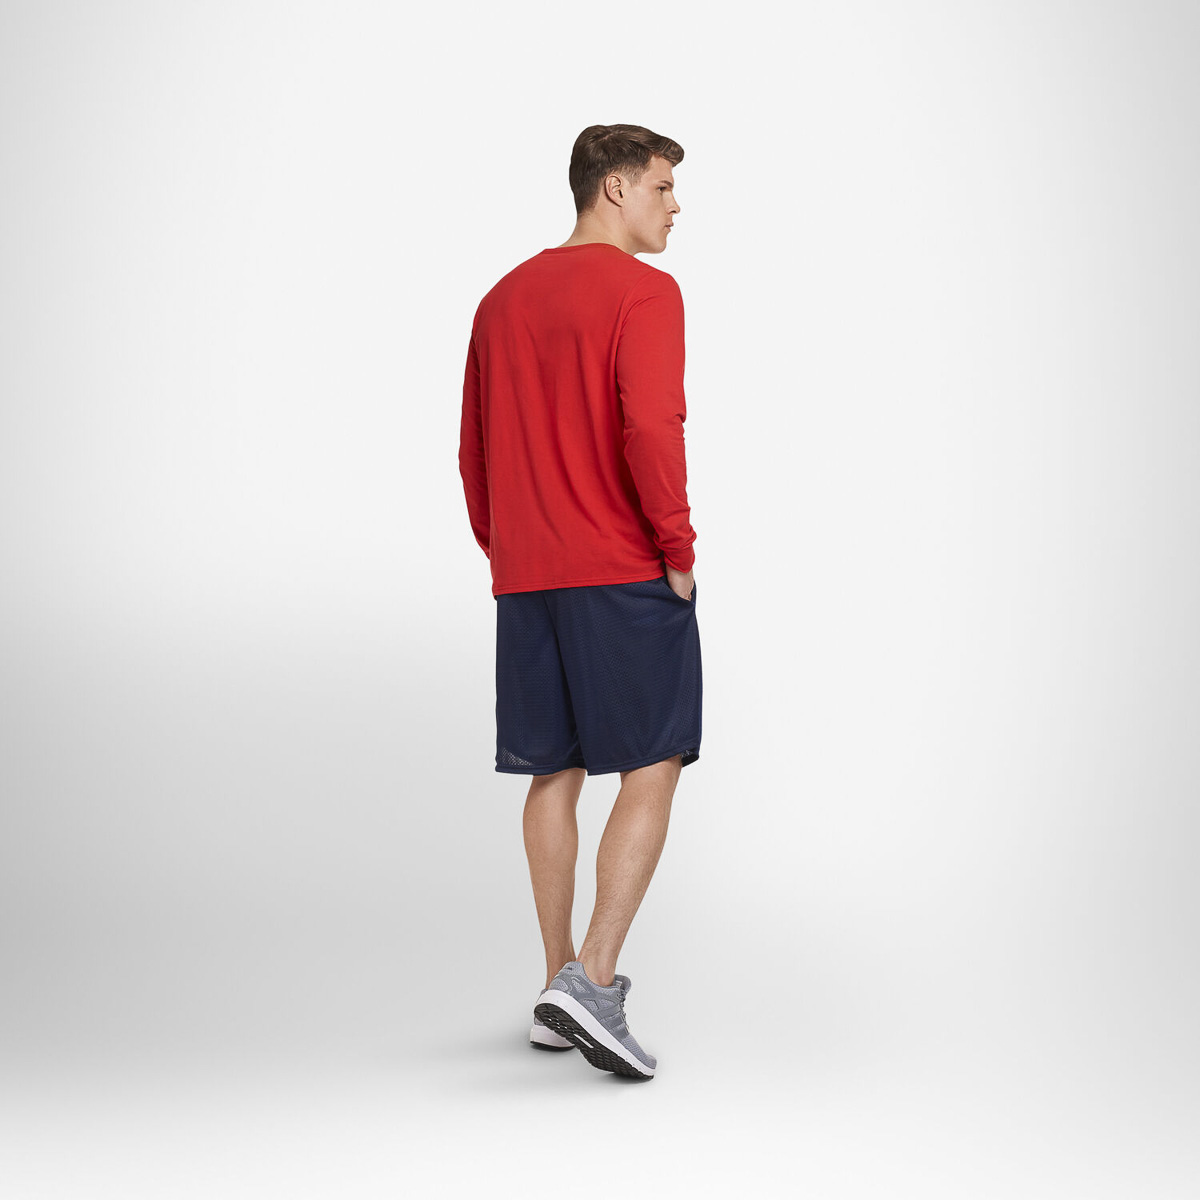 thumbnail 15 - Russell-Athletic-Mens-Shorts-With-Pockets-Mesh-Moisture-Wicking-Gym-Activewear